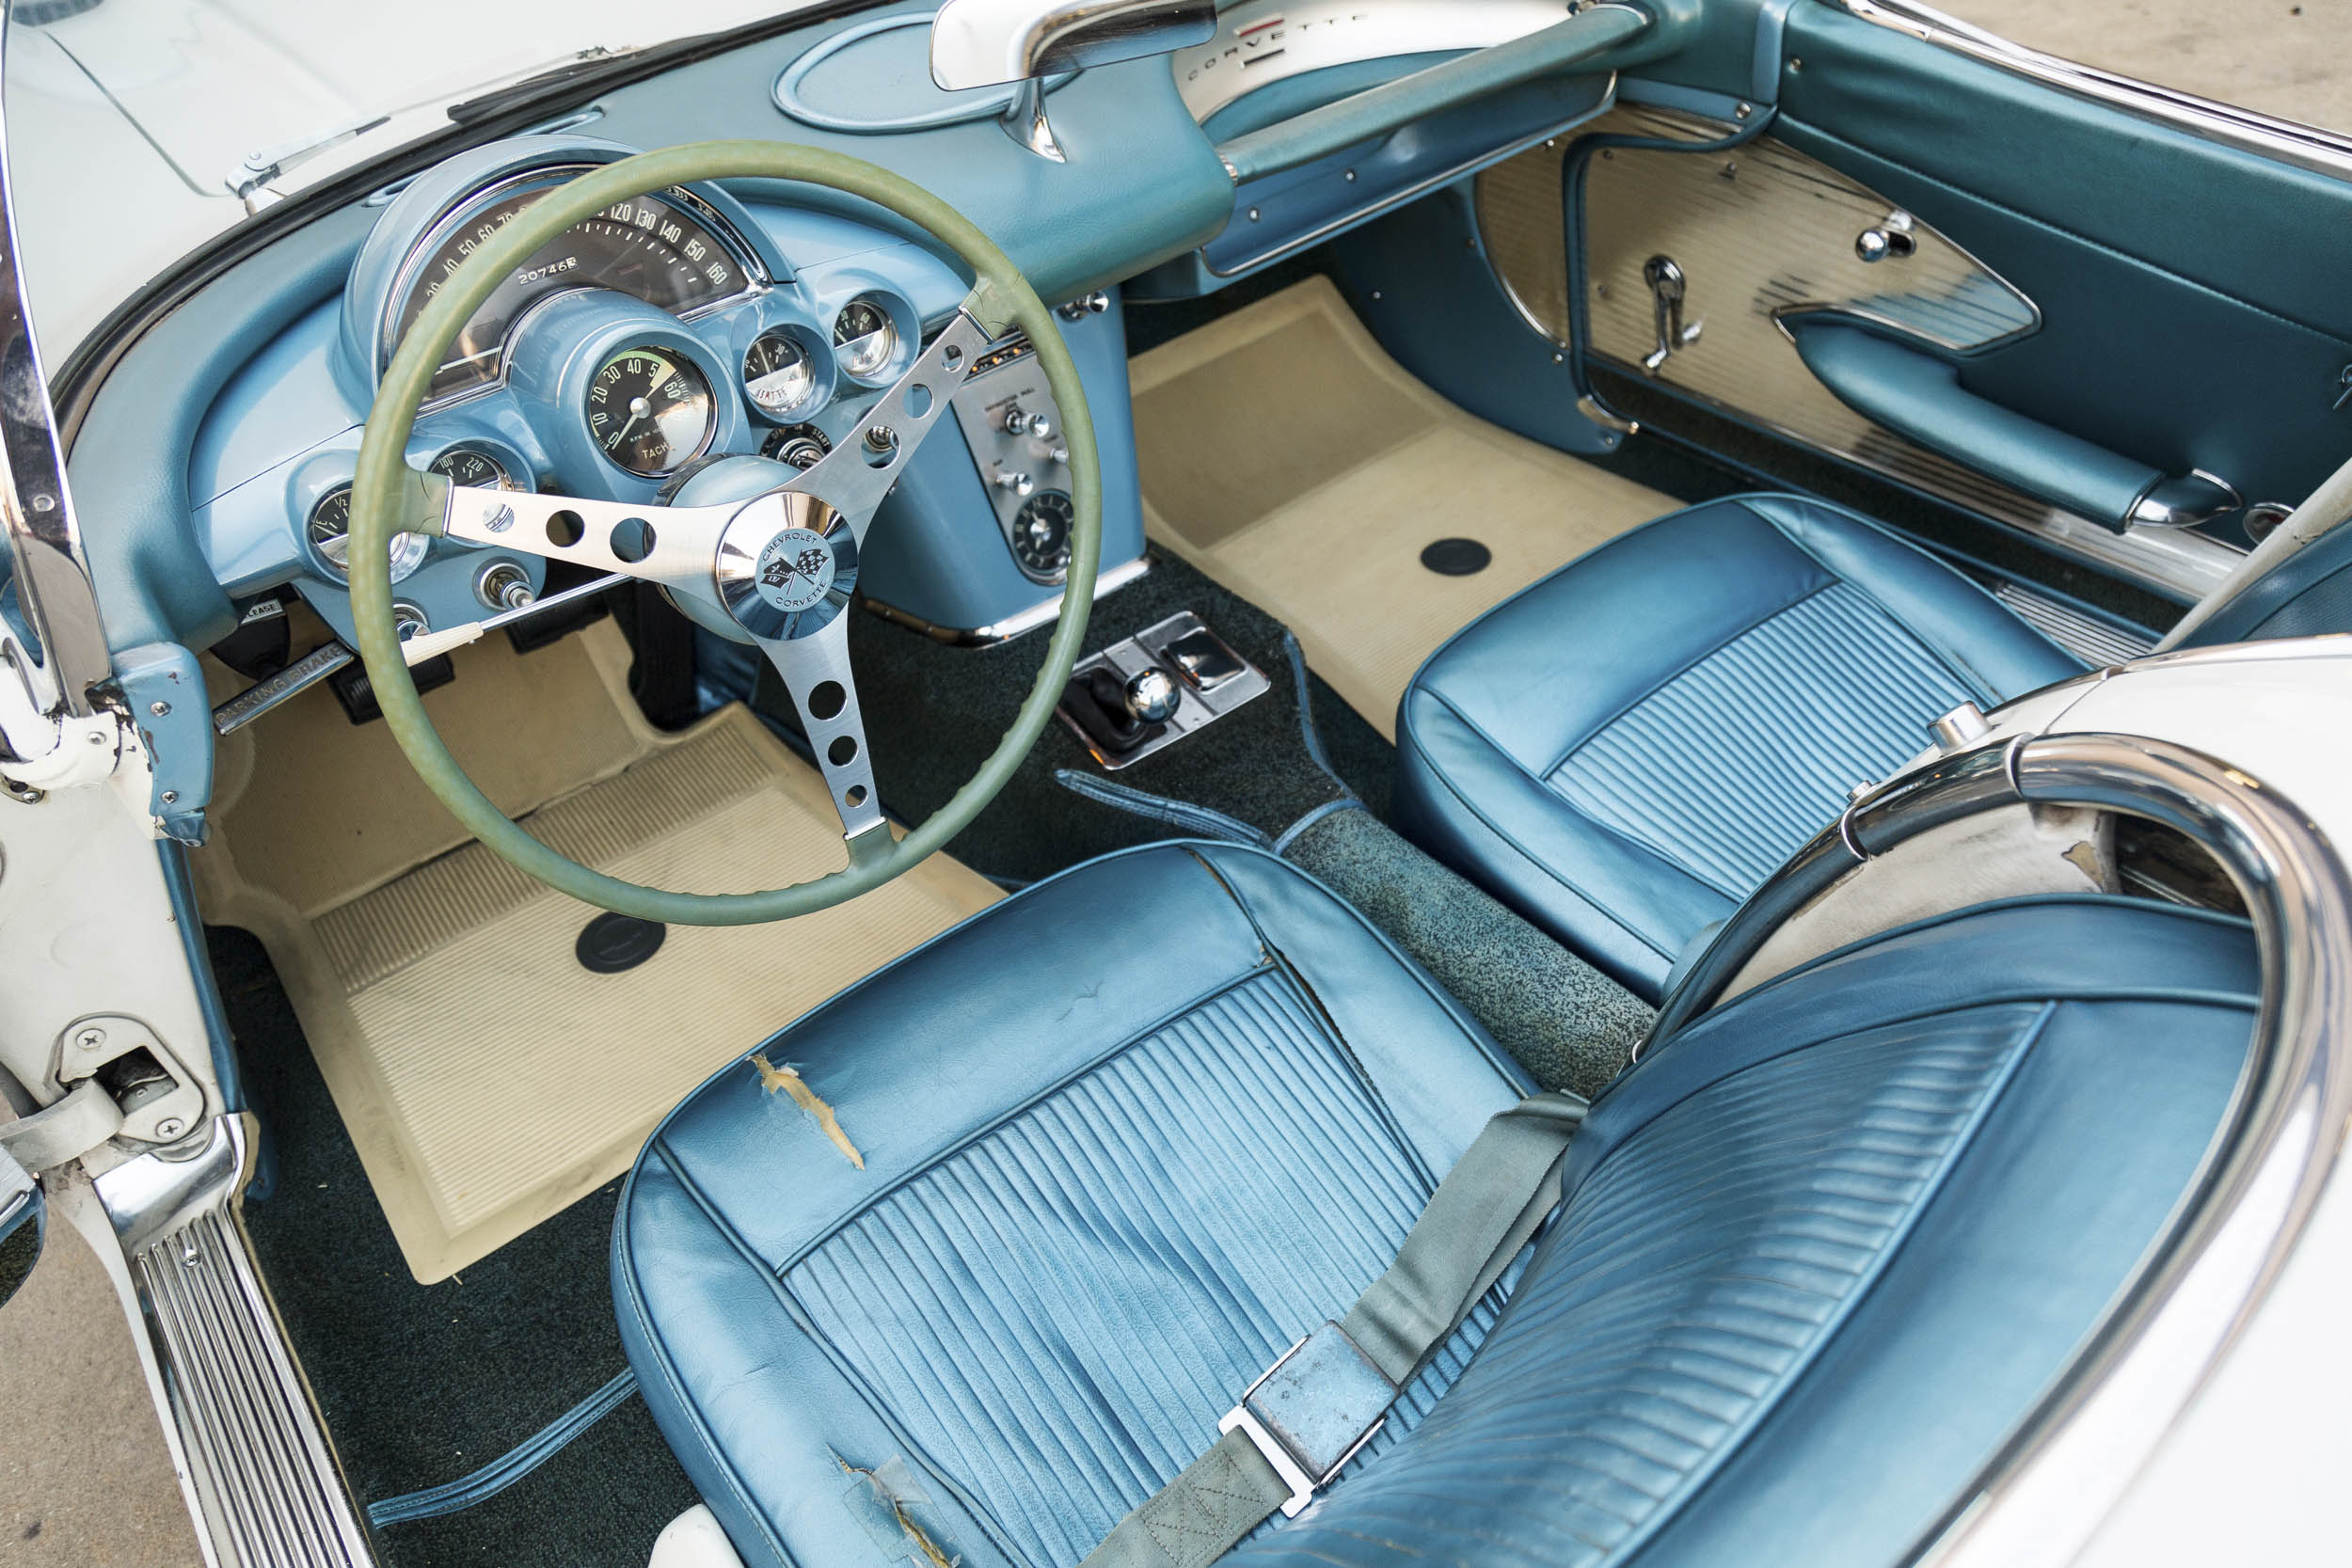 1961 Chevrolet Corvette interior